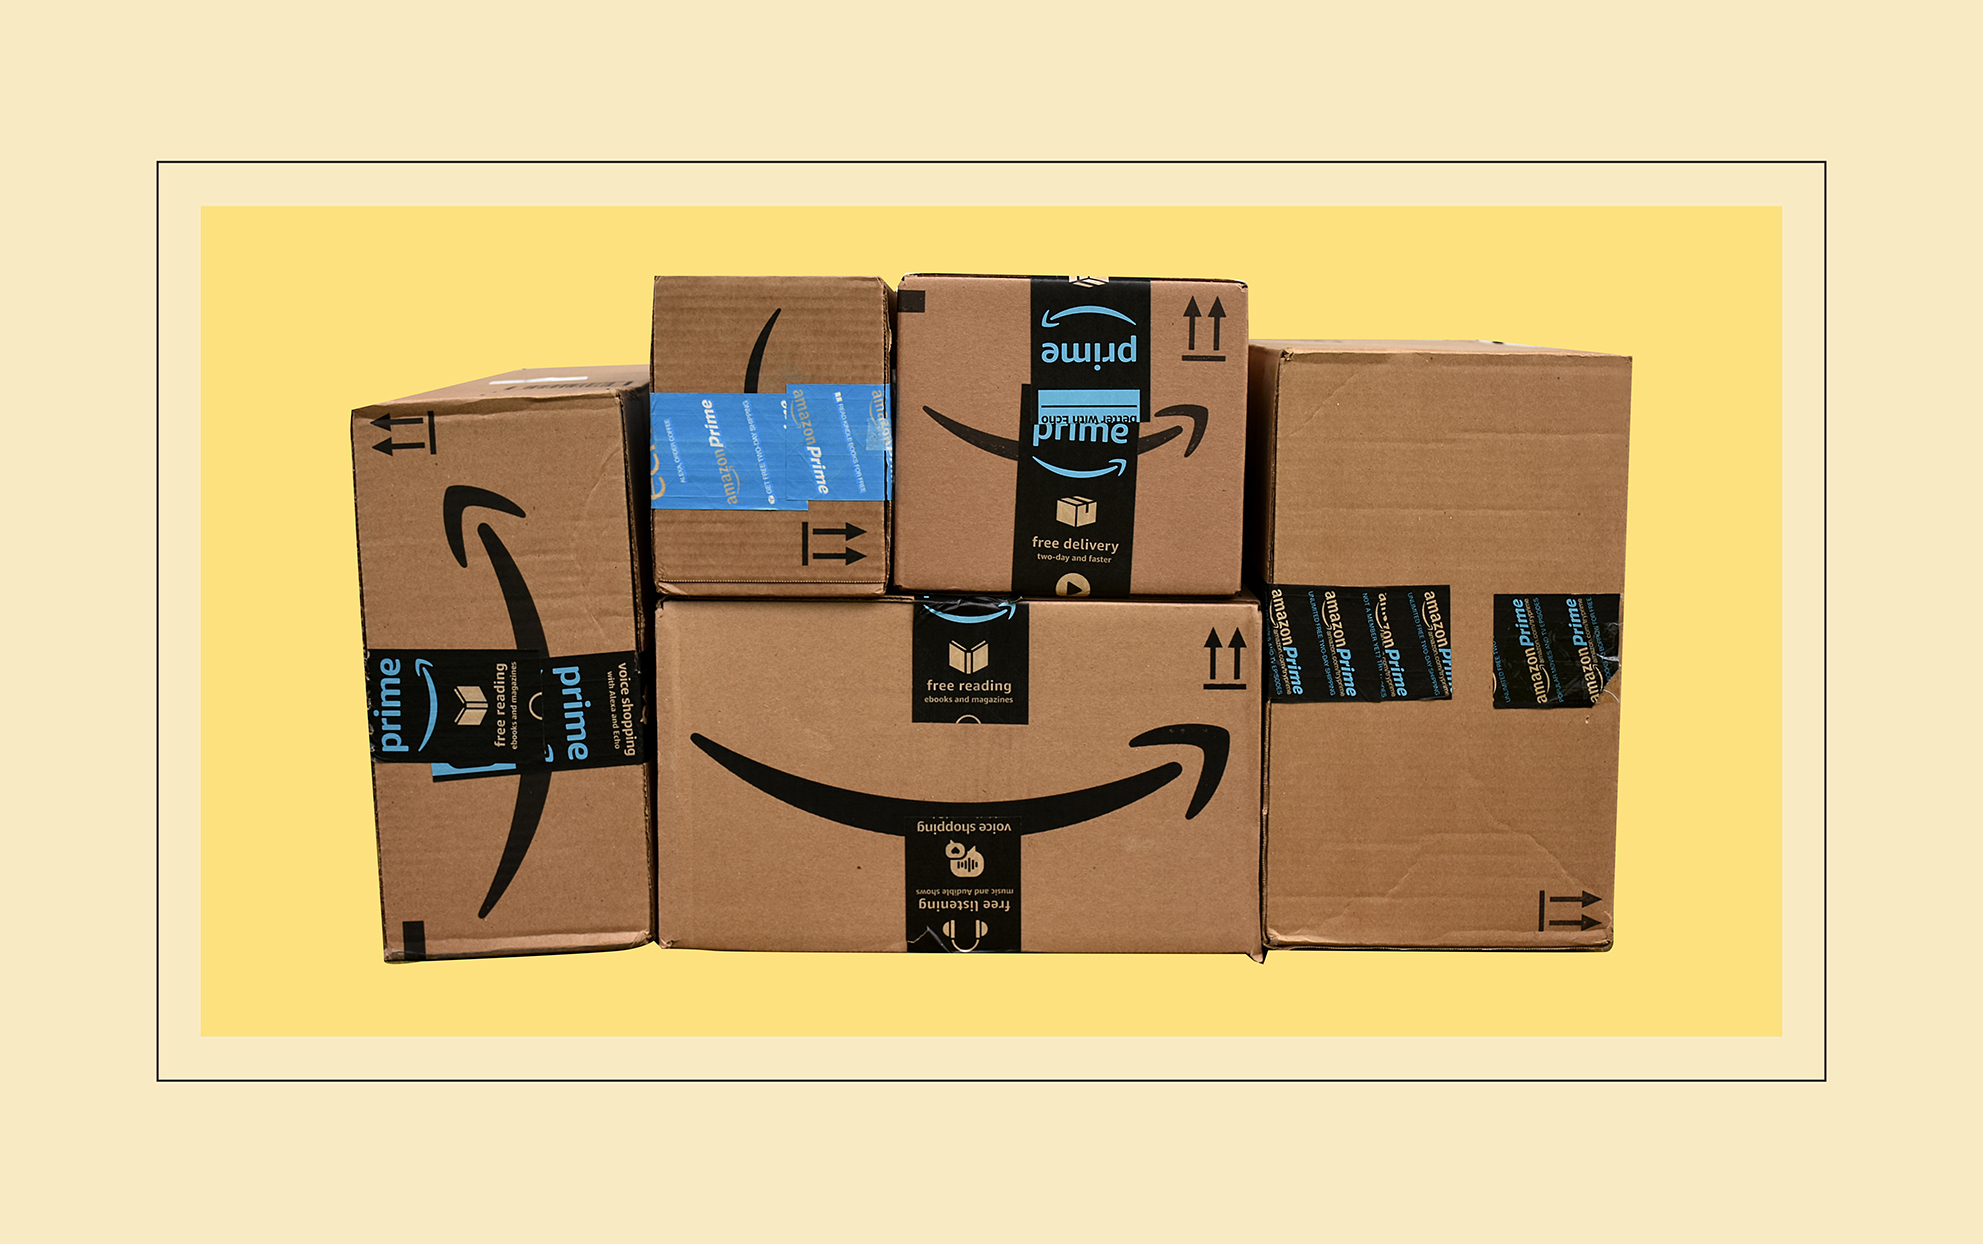 AmazonSmile Makes Donating to Your Favorite Charity So Easy